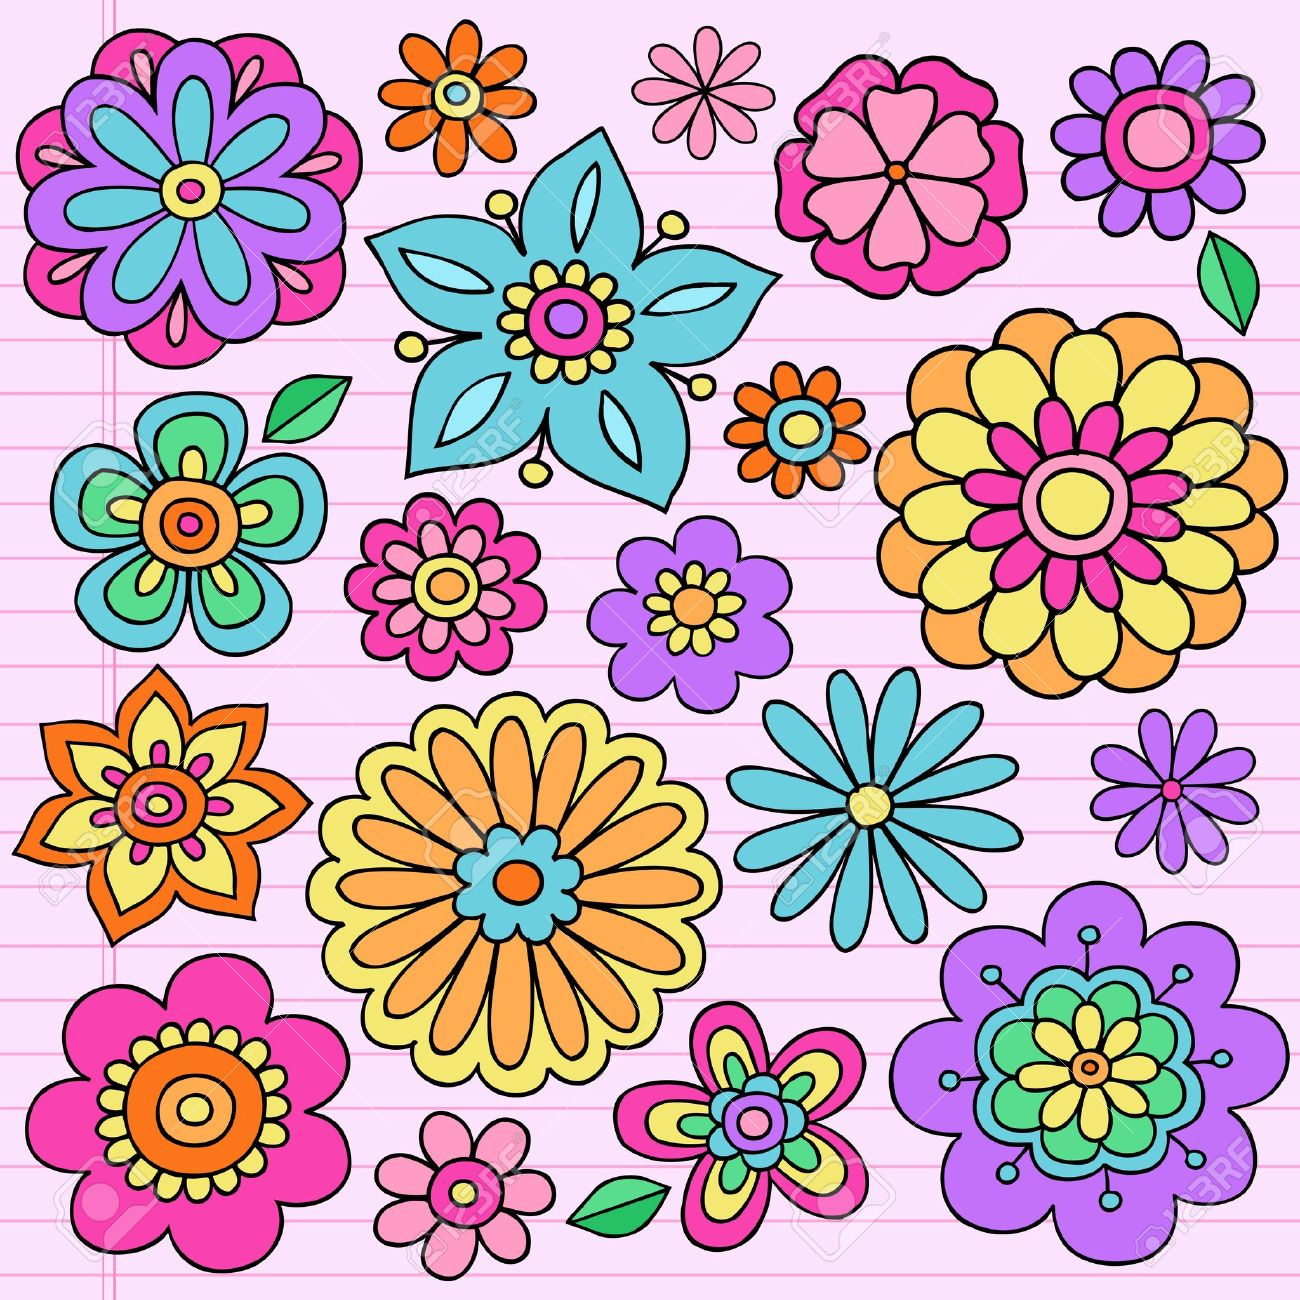 Flower power groovy psychedelic hand drawn notebook doodle design flower power groovy psychedelic hand drawn notebook doodle design elements set on lined sketchbook paper background mightylinksfo